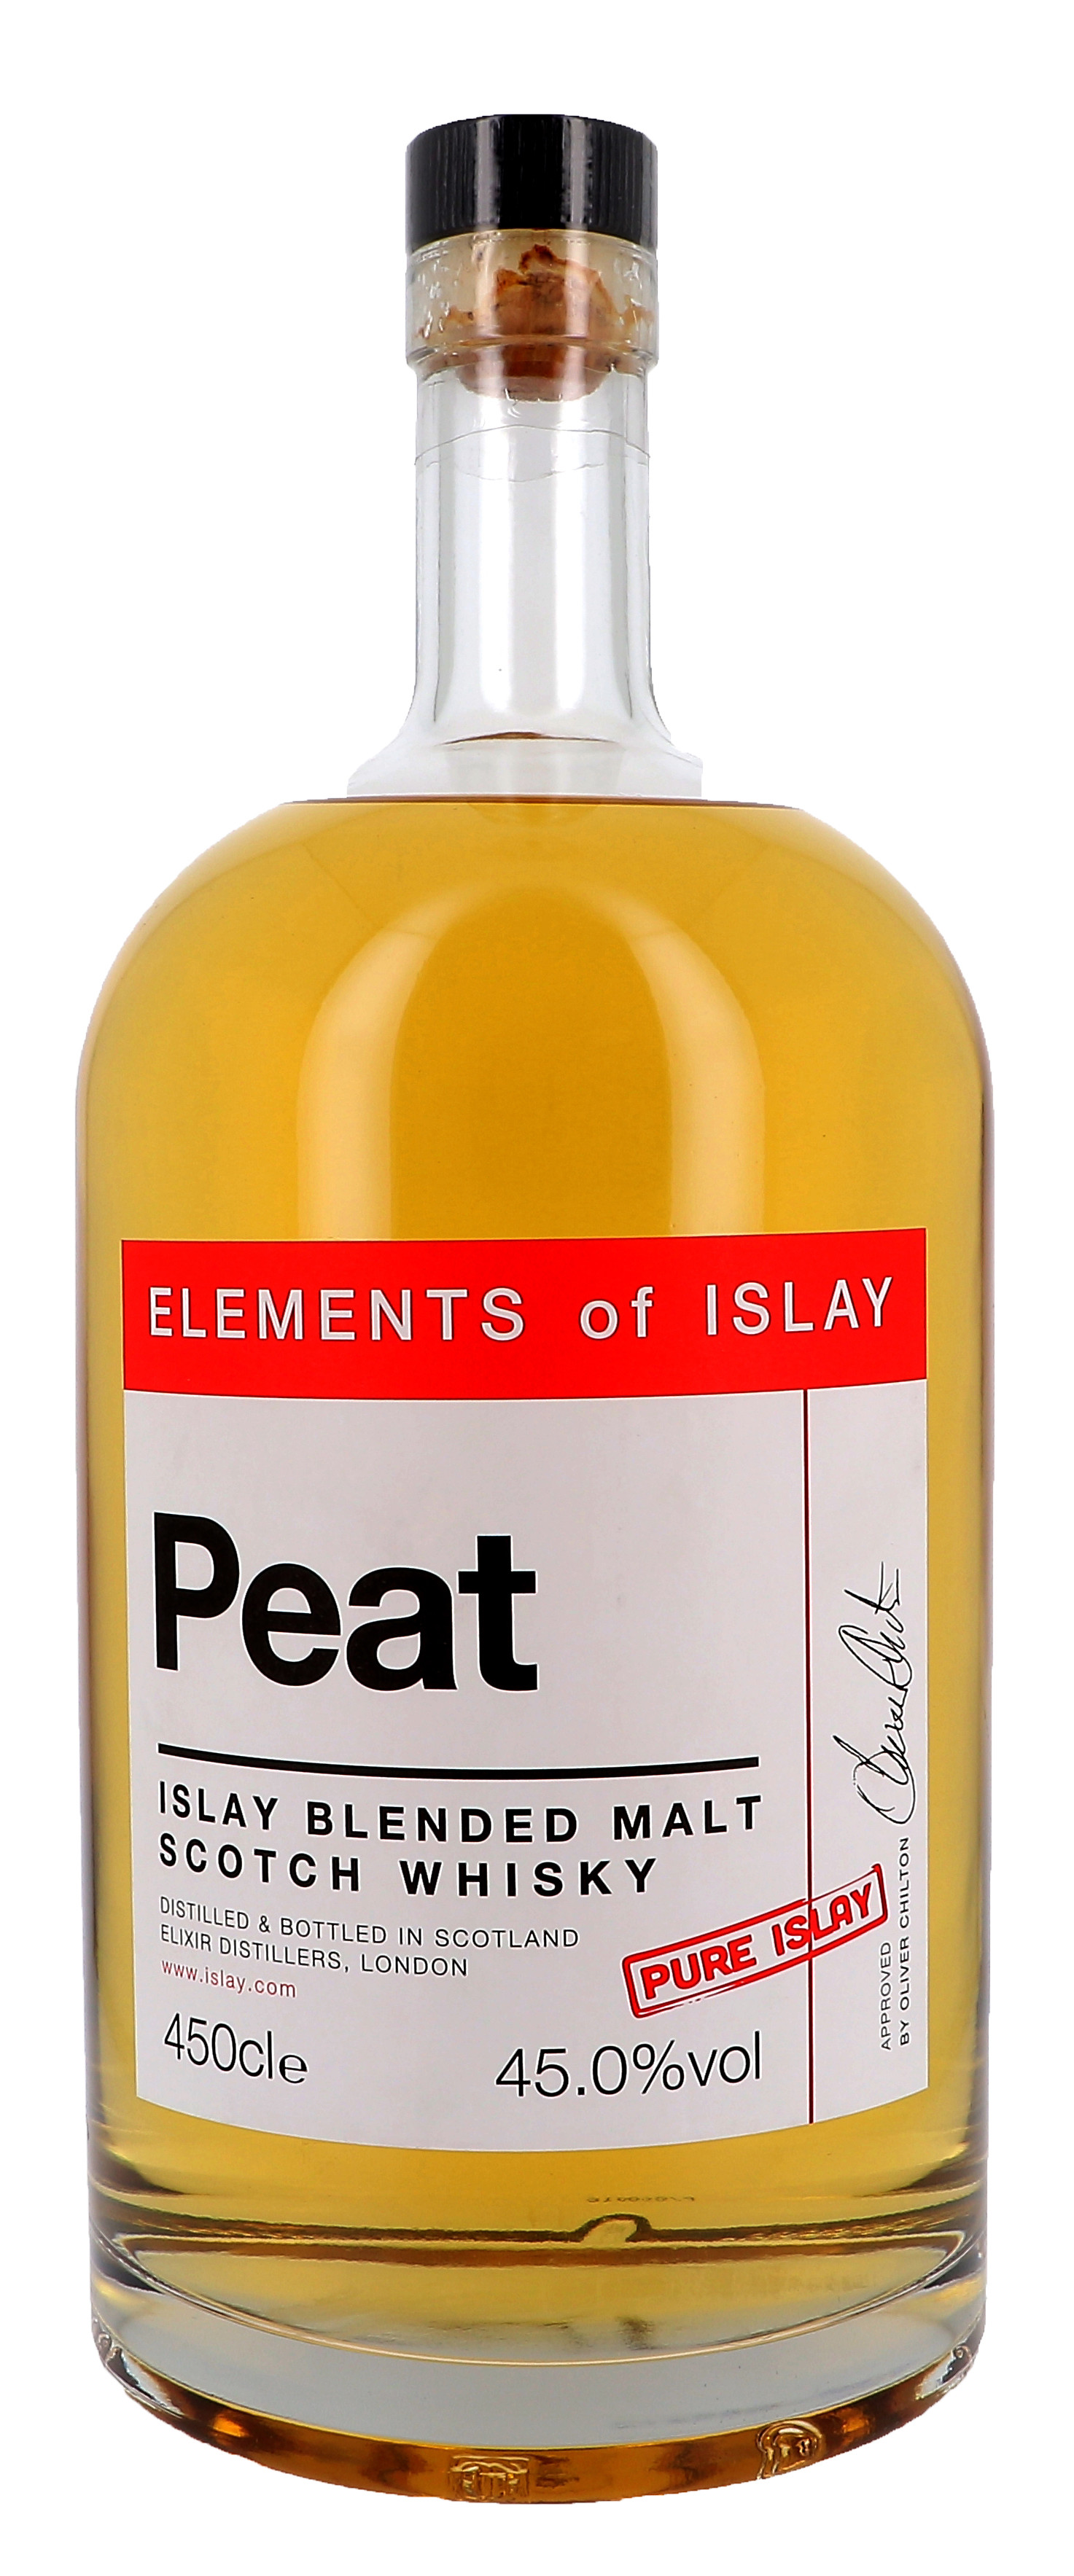 Elements of Islay Peat 4.5Liter 45% Islay Blended Malt Scotch Whisky (Whisky)